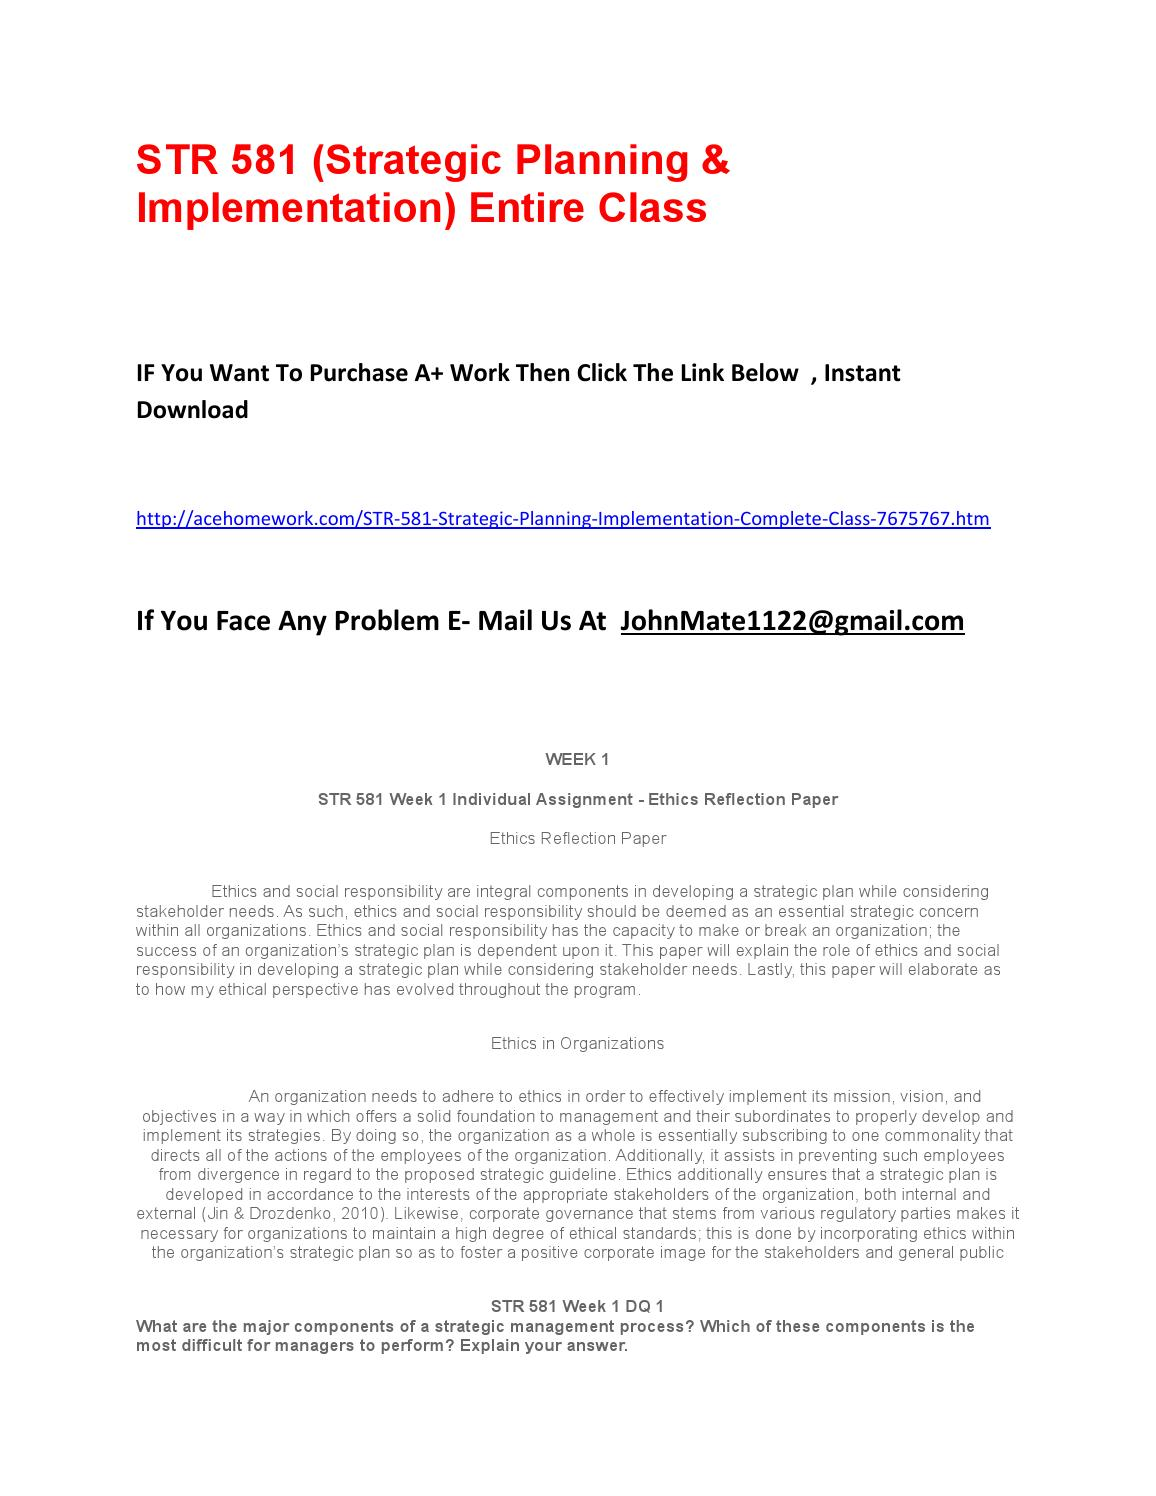 strategic planning implementation str 581 final paper Essay on strategic plan final for str 581 you the strategic planning of crib sheet individual final strategic business plan paper and.